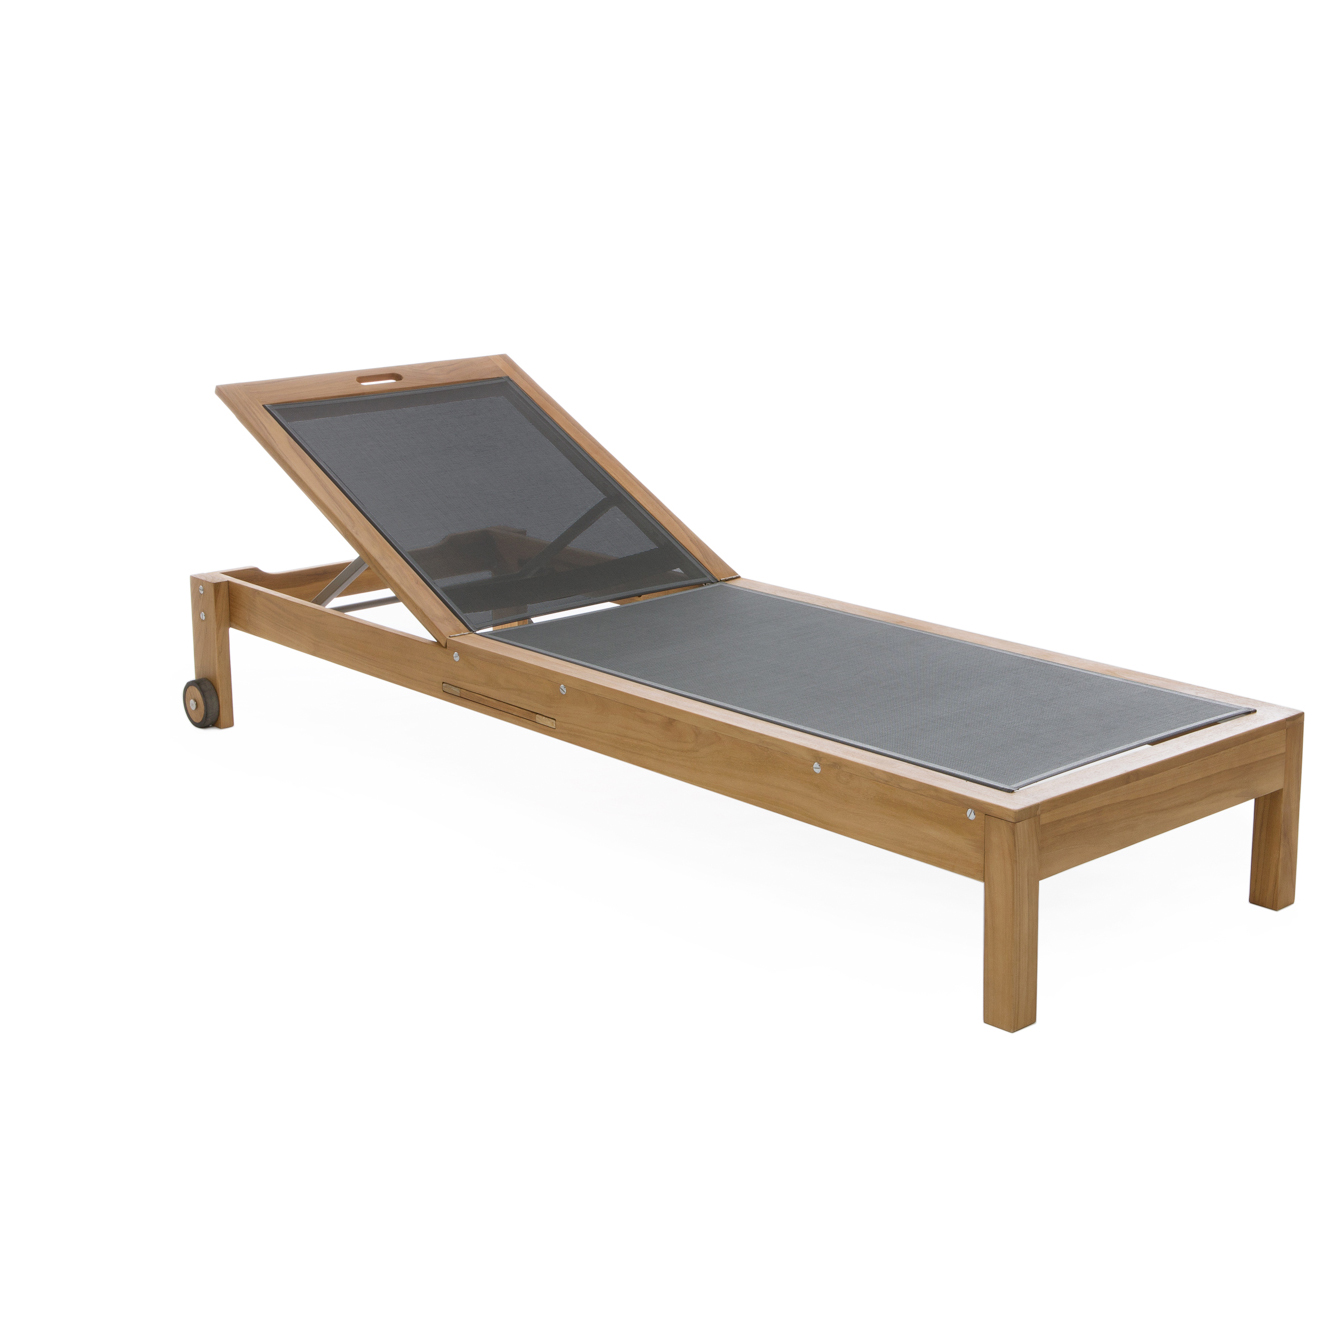 Chaise longue de jardin design chaise longue salon de for Chaise longue design jardin